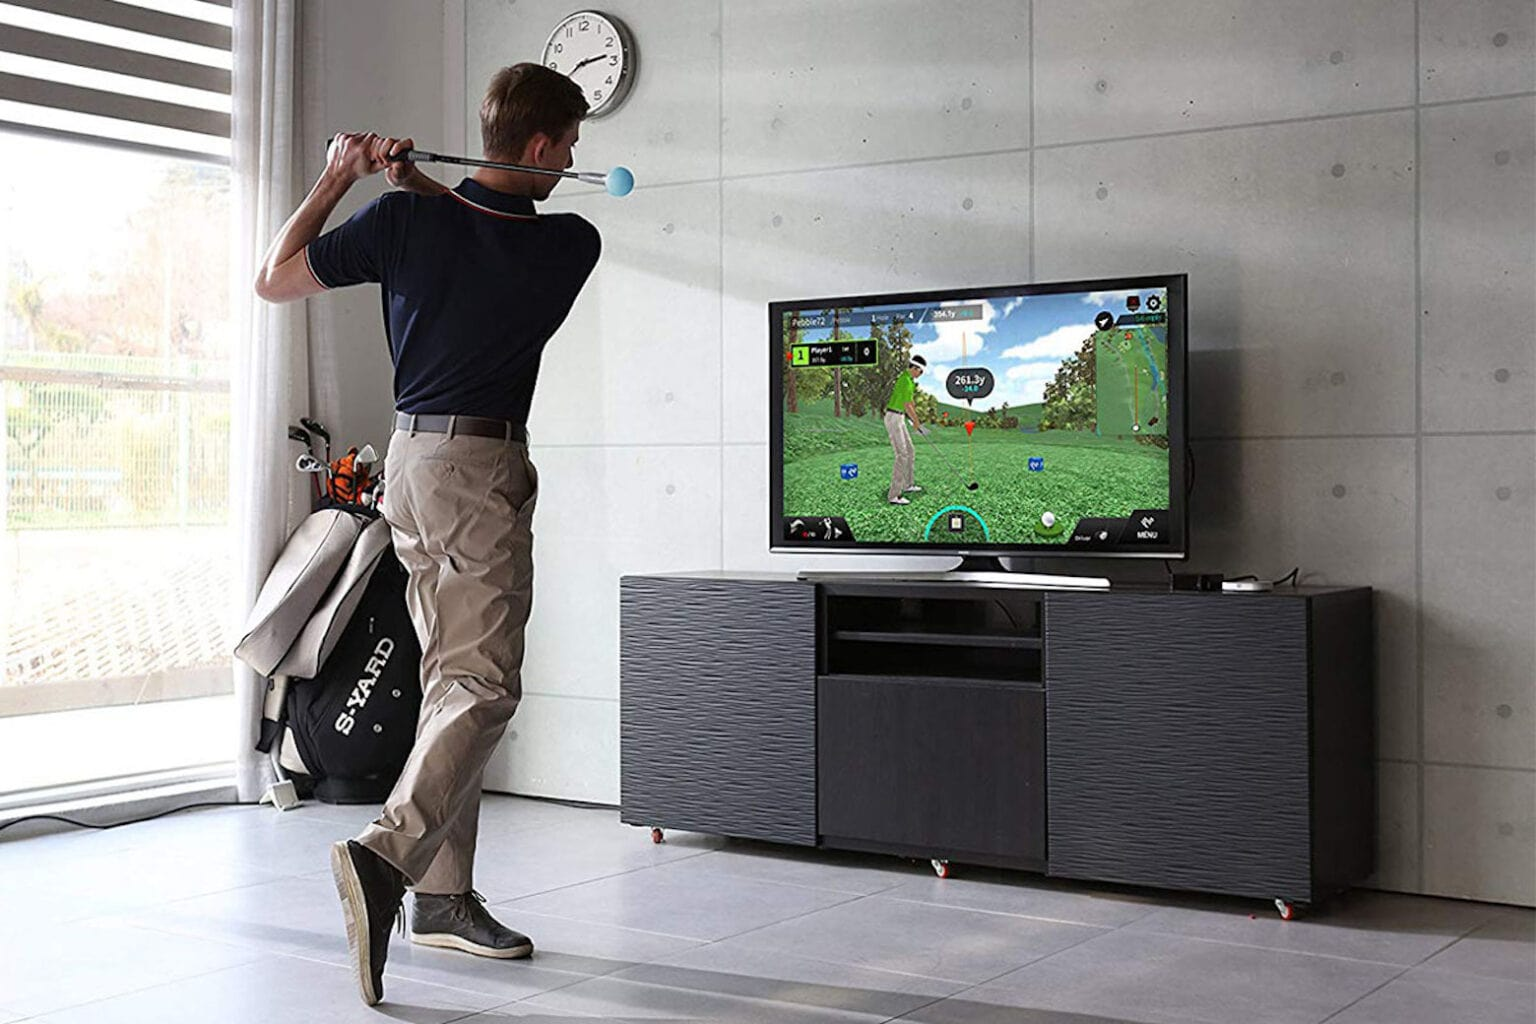 The PhiGolf- Mobile & Home Smart Golf Simulator with Swing Stick is the perfect activity for indoors